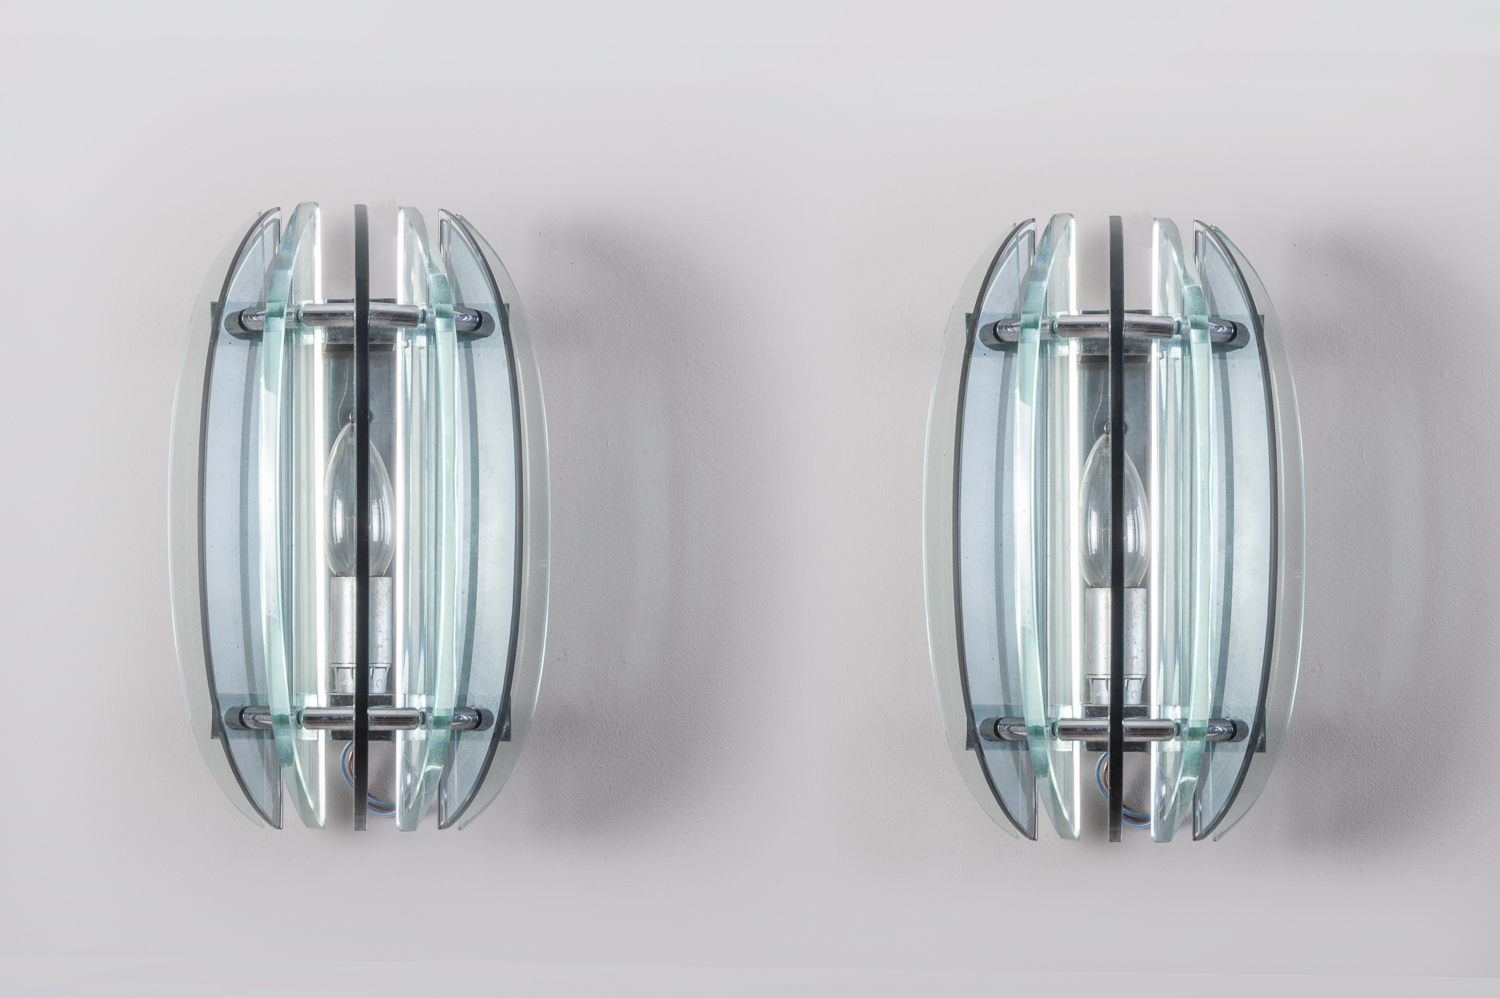 Pair of black/ clear glass wall sconces